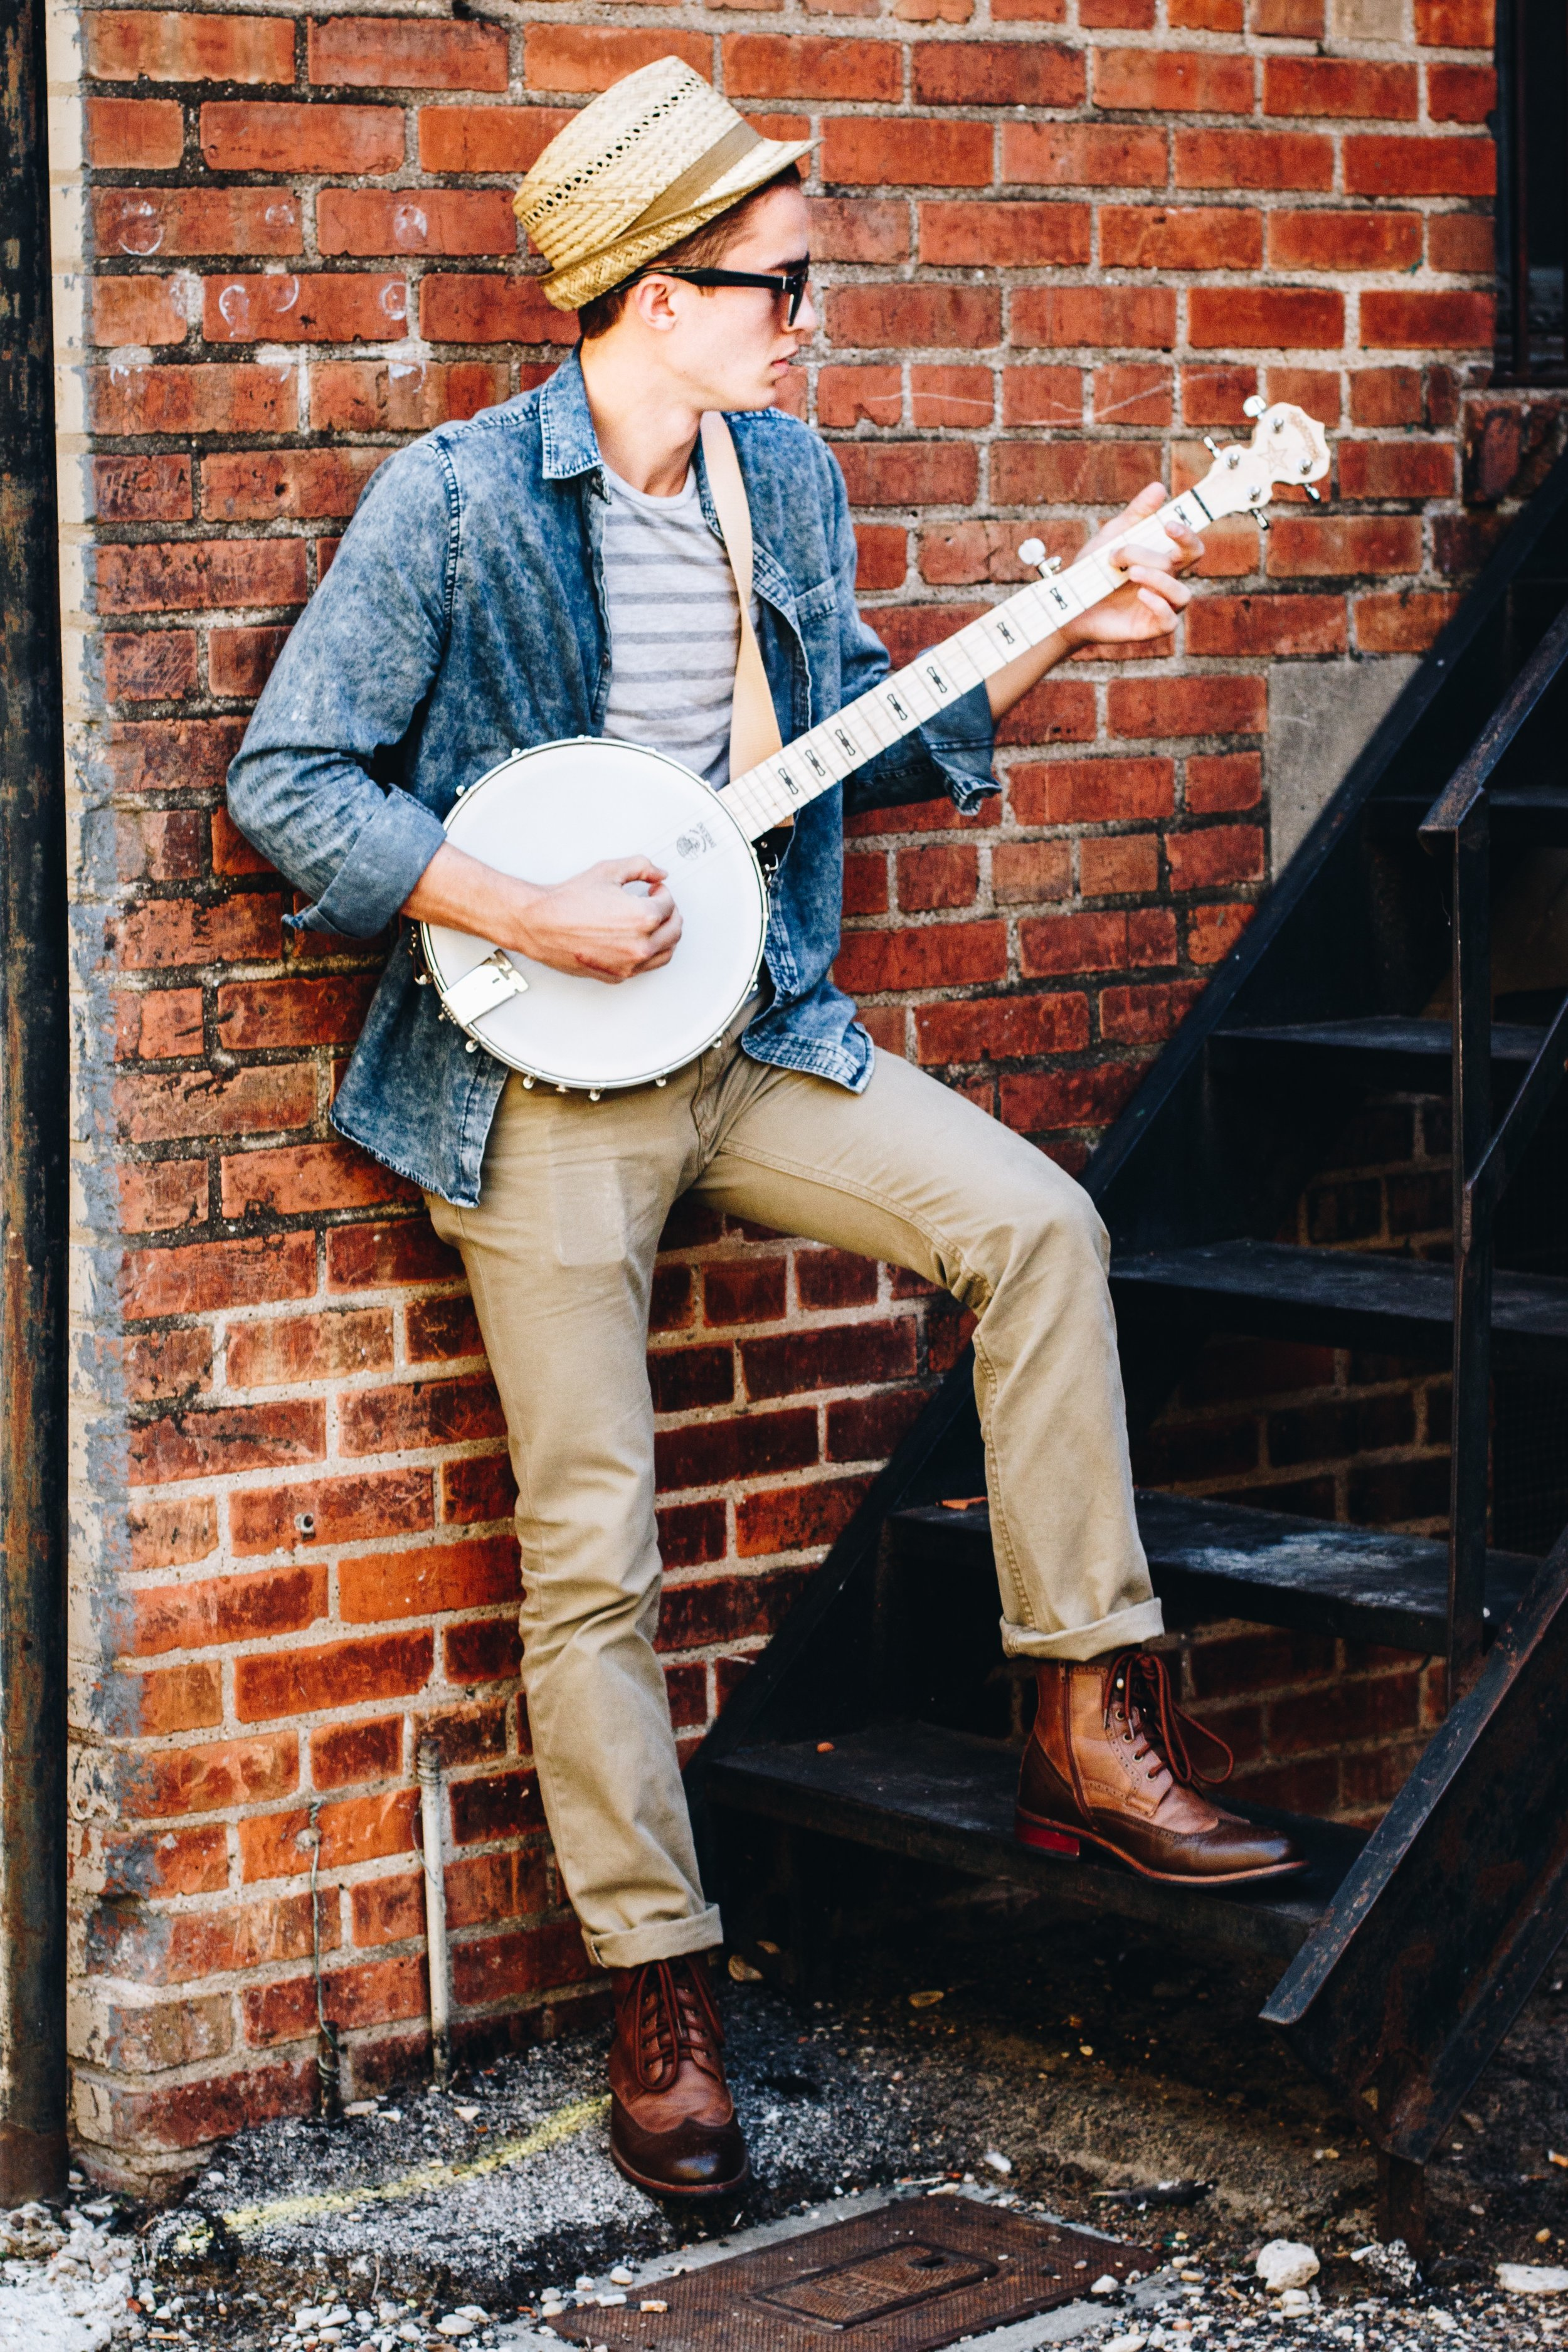 Luke Hoeft - Luke is the frontman and writer of most of Medicine Man's music. He started the group in 2016 with John Burton and Stephen Spink. The trio met as music majors at Baylor University- all three specializing in trumpet performance. In the band Luke rarely plays trumpet, focusing more on guitar, piano, banjo, and vocals. Although, he will sometimes grab a trumpet during a show and play a bit just to surprise fans. Luke currently serves as the music director at Twin Lakes Fellowship in Cedar Park, Texas and is married to Heather Hoeft of Medicine Man.